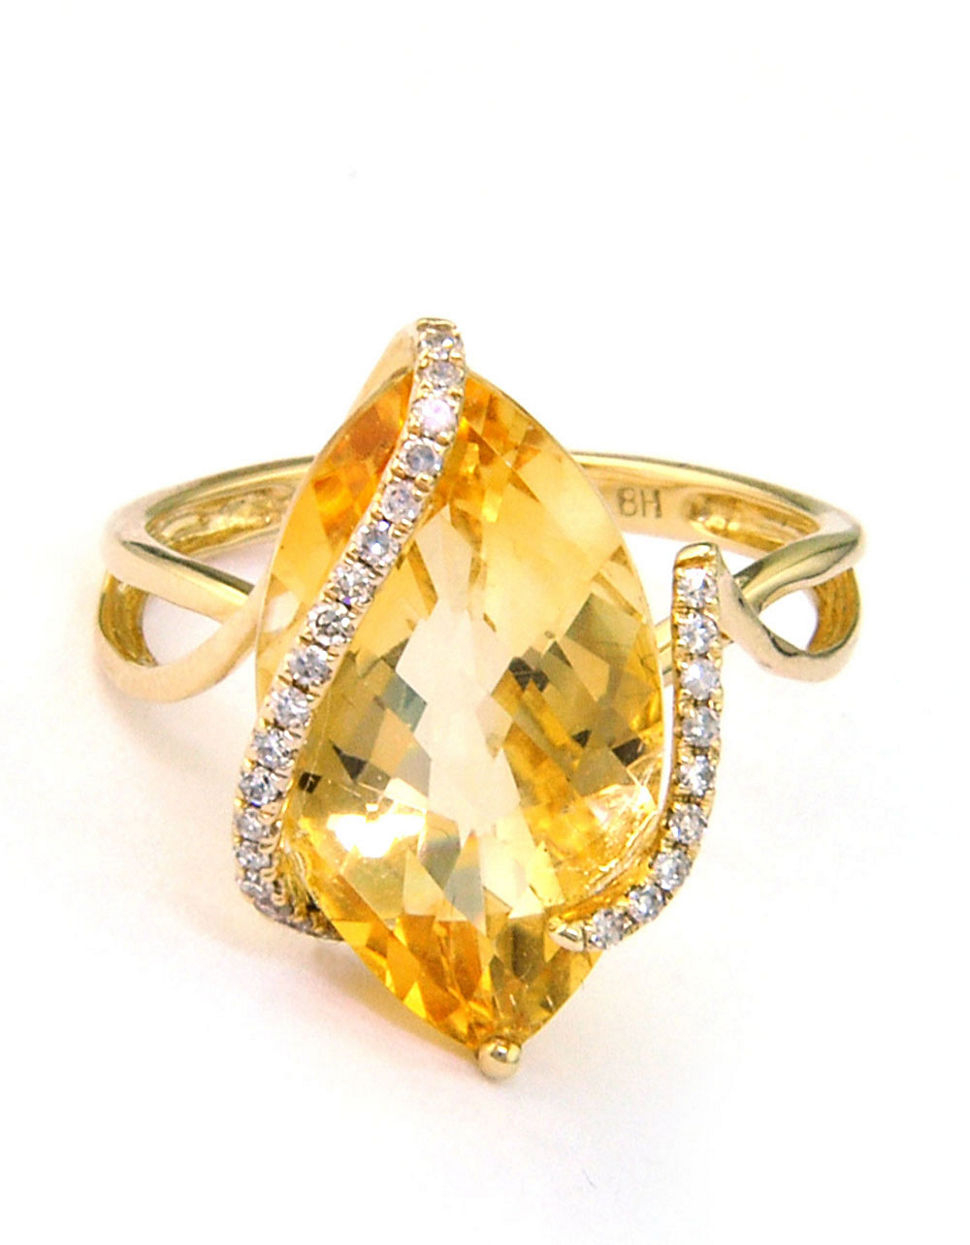 Effy 14 Kt Gold Diamond Accented Citrine Ring In Metallic. Baguette Infinity Band. Unusual Watches. 20 Ct Diamond. Unusual Jewellery. Natural Rings. Mental Health Awareness Bracelet. Fashion Jewelry Bracelet. Formal Watches